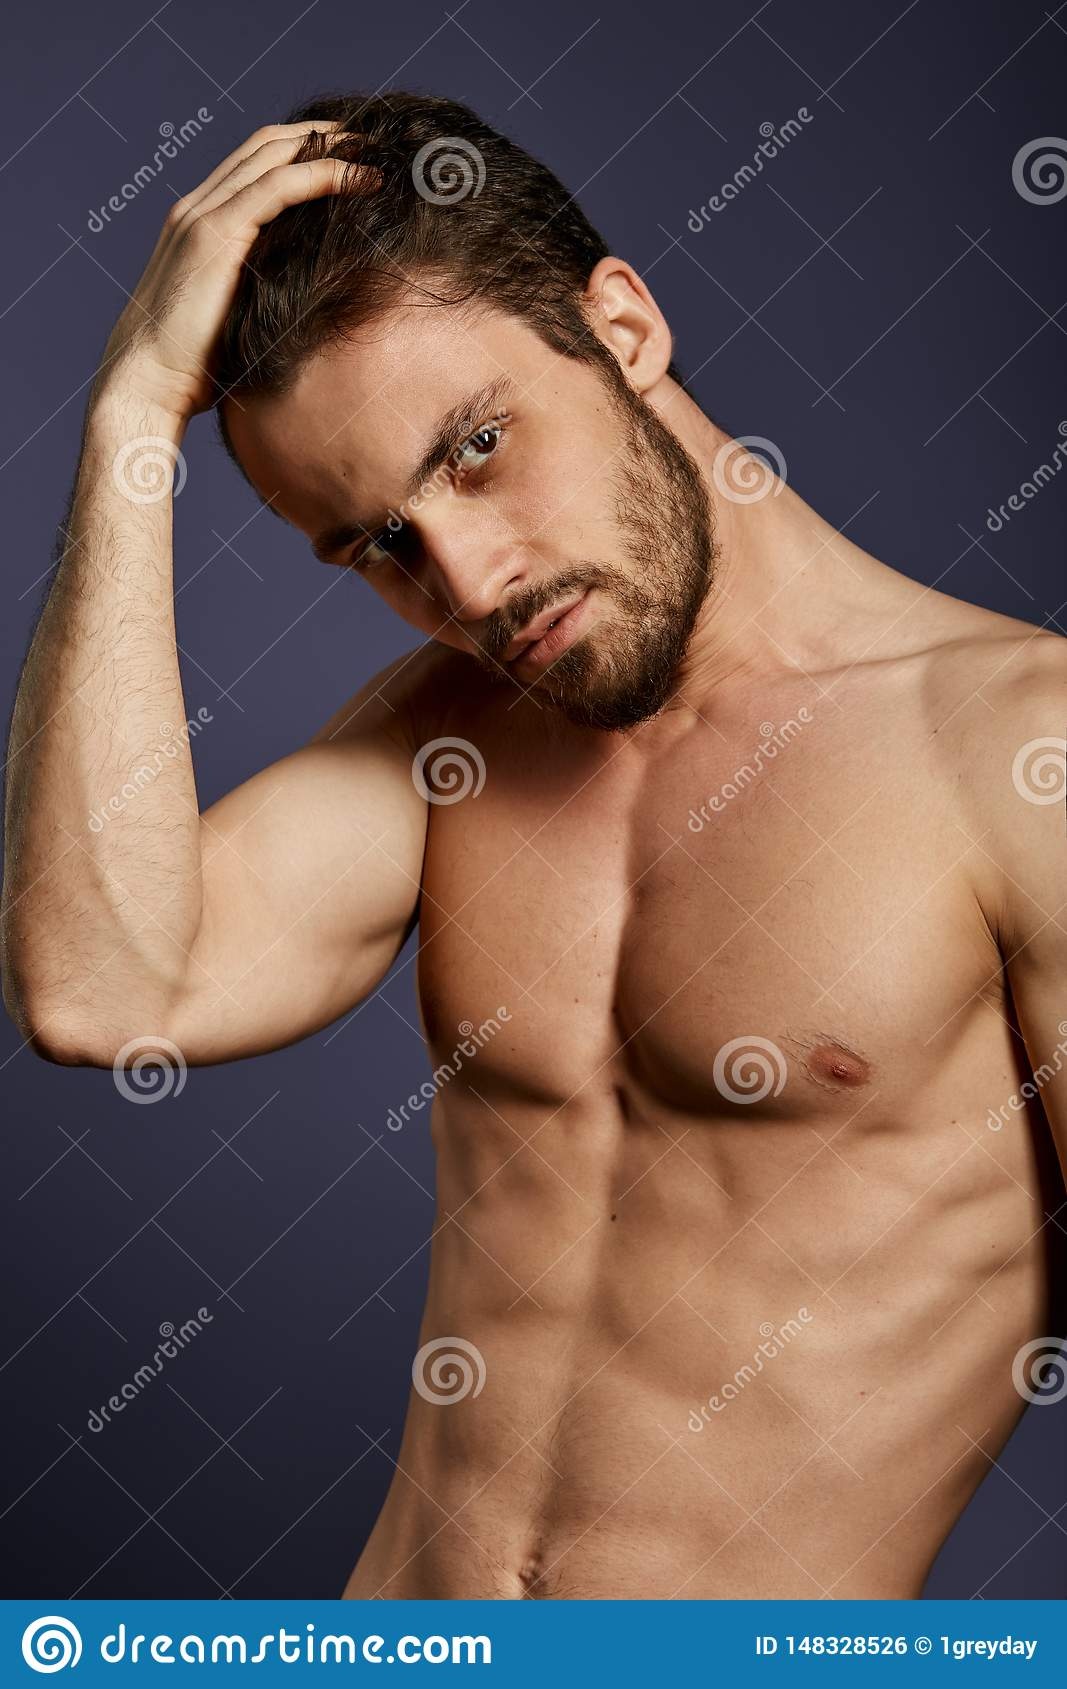 Pleasant good looking man showing his perfect torso, body